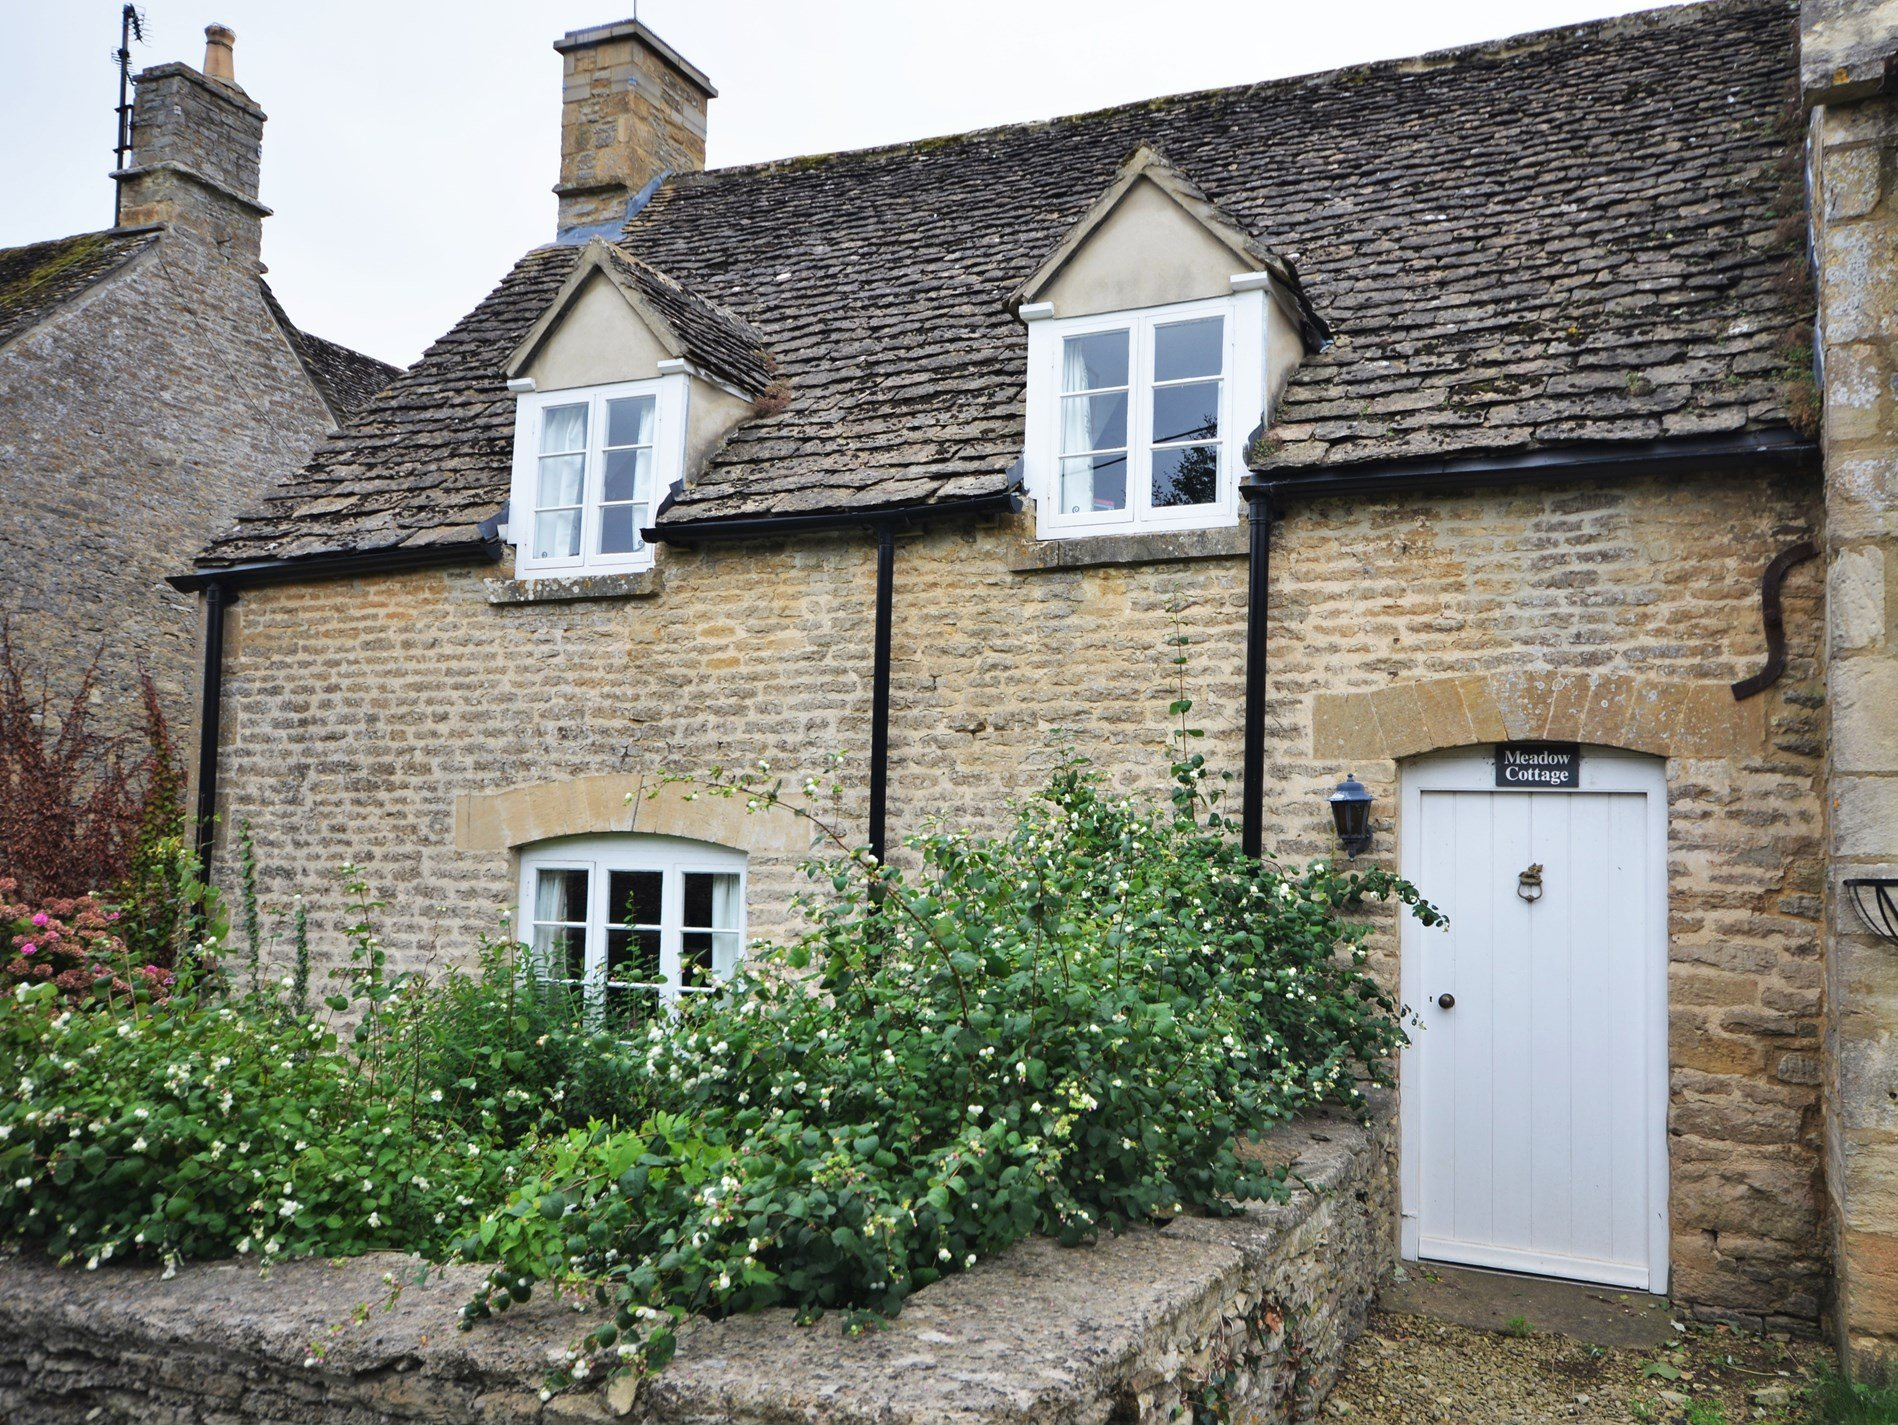 FCH40192, Lechlade